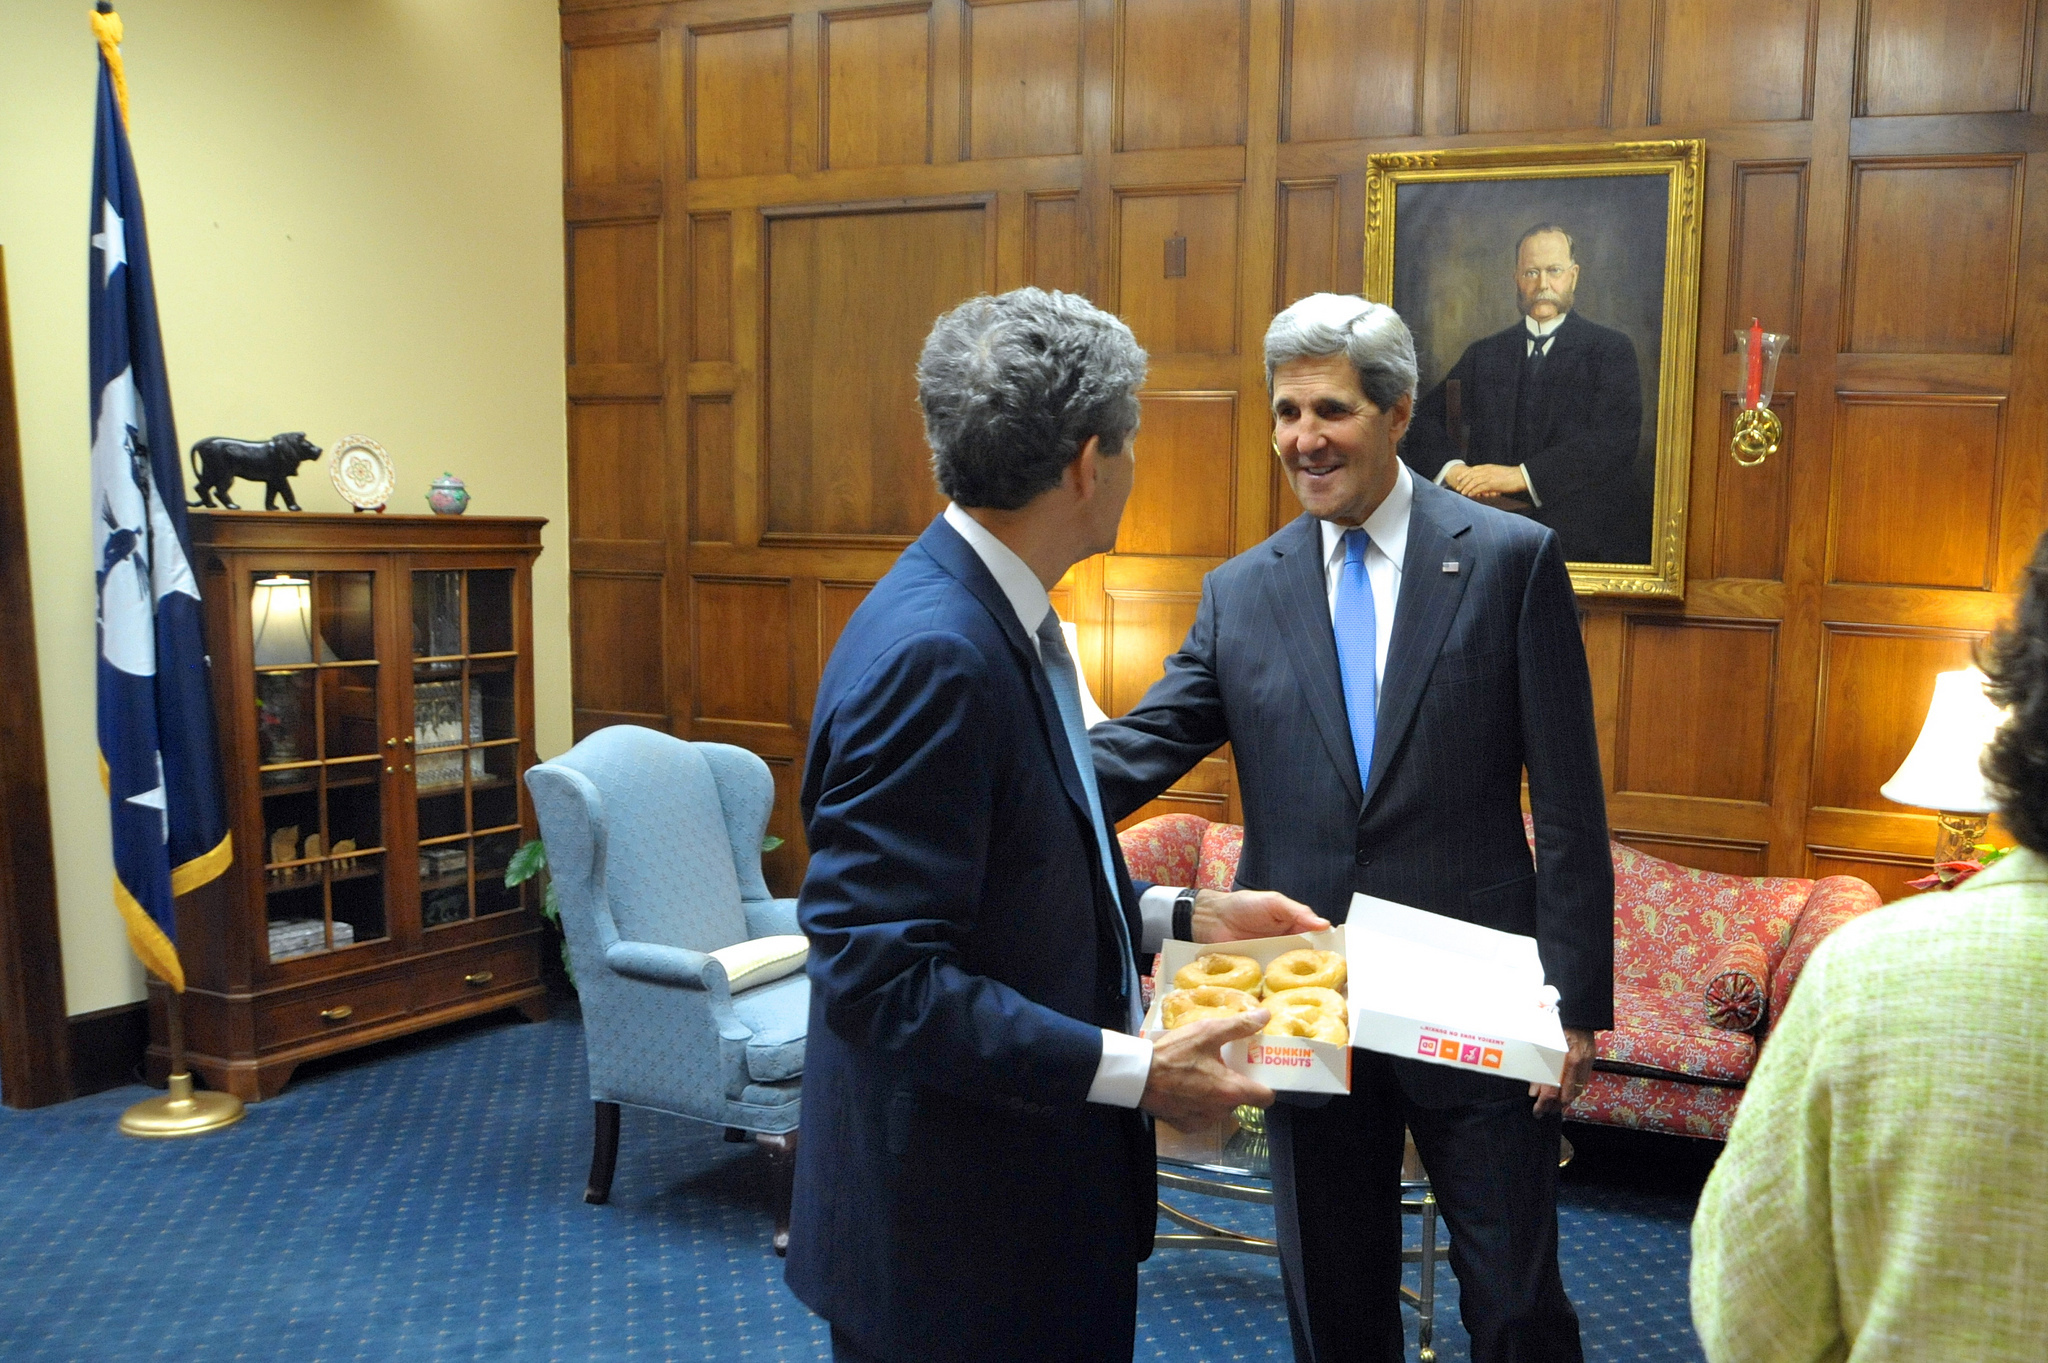 Secretary John Kerry Delivers Dunkin' Donuts to His Brother, Acting Commerce Secretary Cameron Kerry, and His Staff